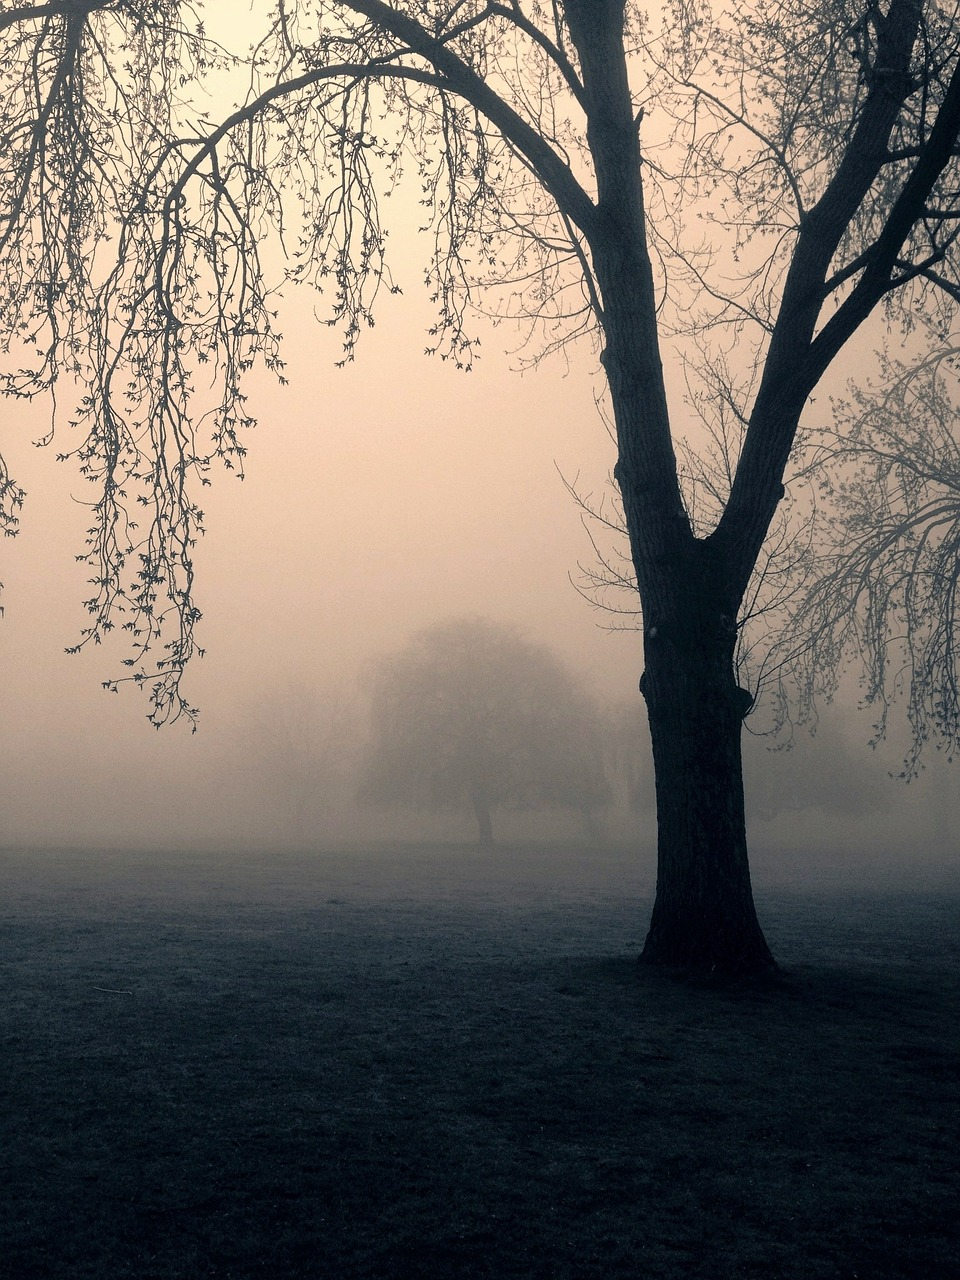 https://pixabay.com/en/trees-spooky-mist-park-nature-448554/